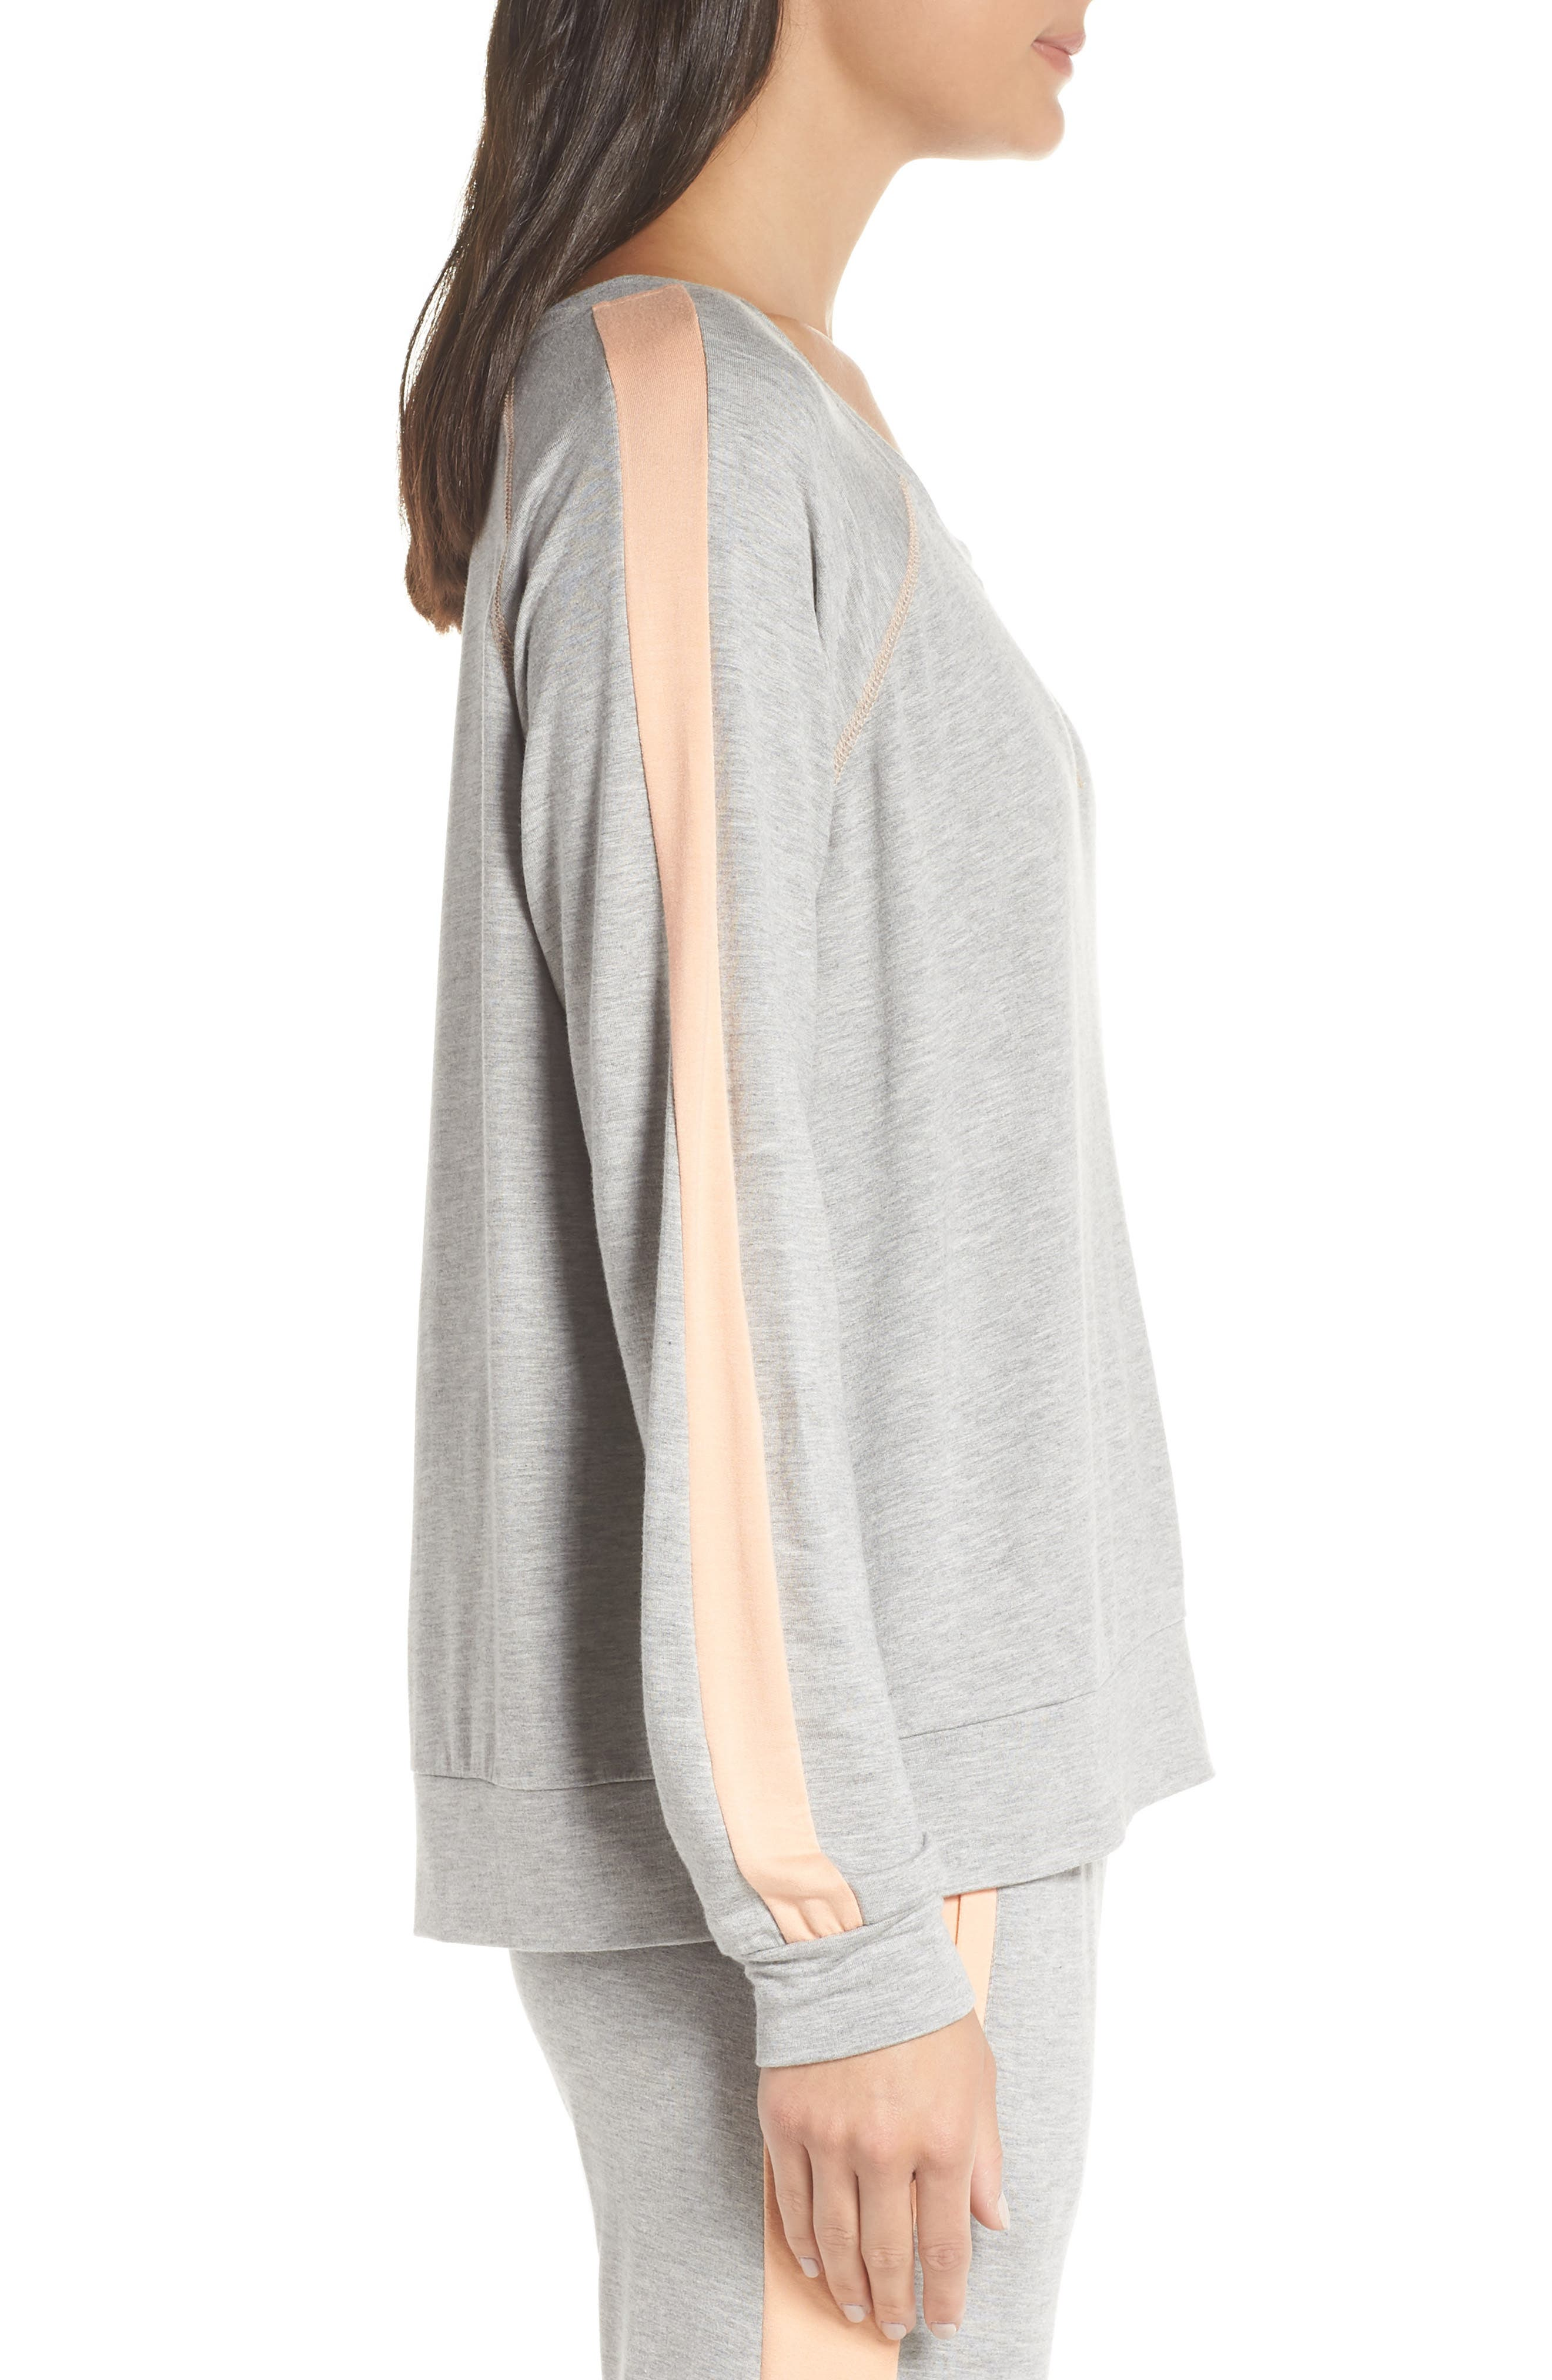 Elevens Sweatshirt,                             Alternate thumbnail 3, color,                             HEATHER / PEACH